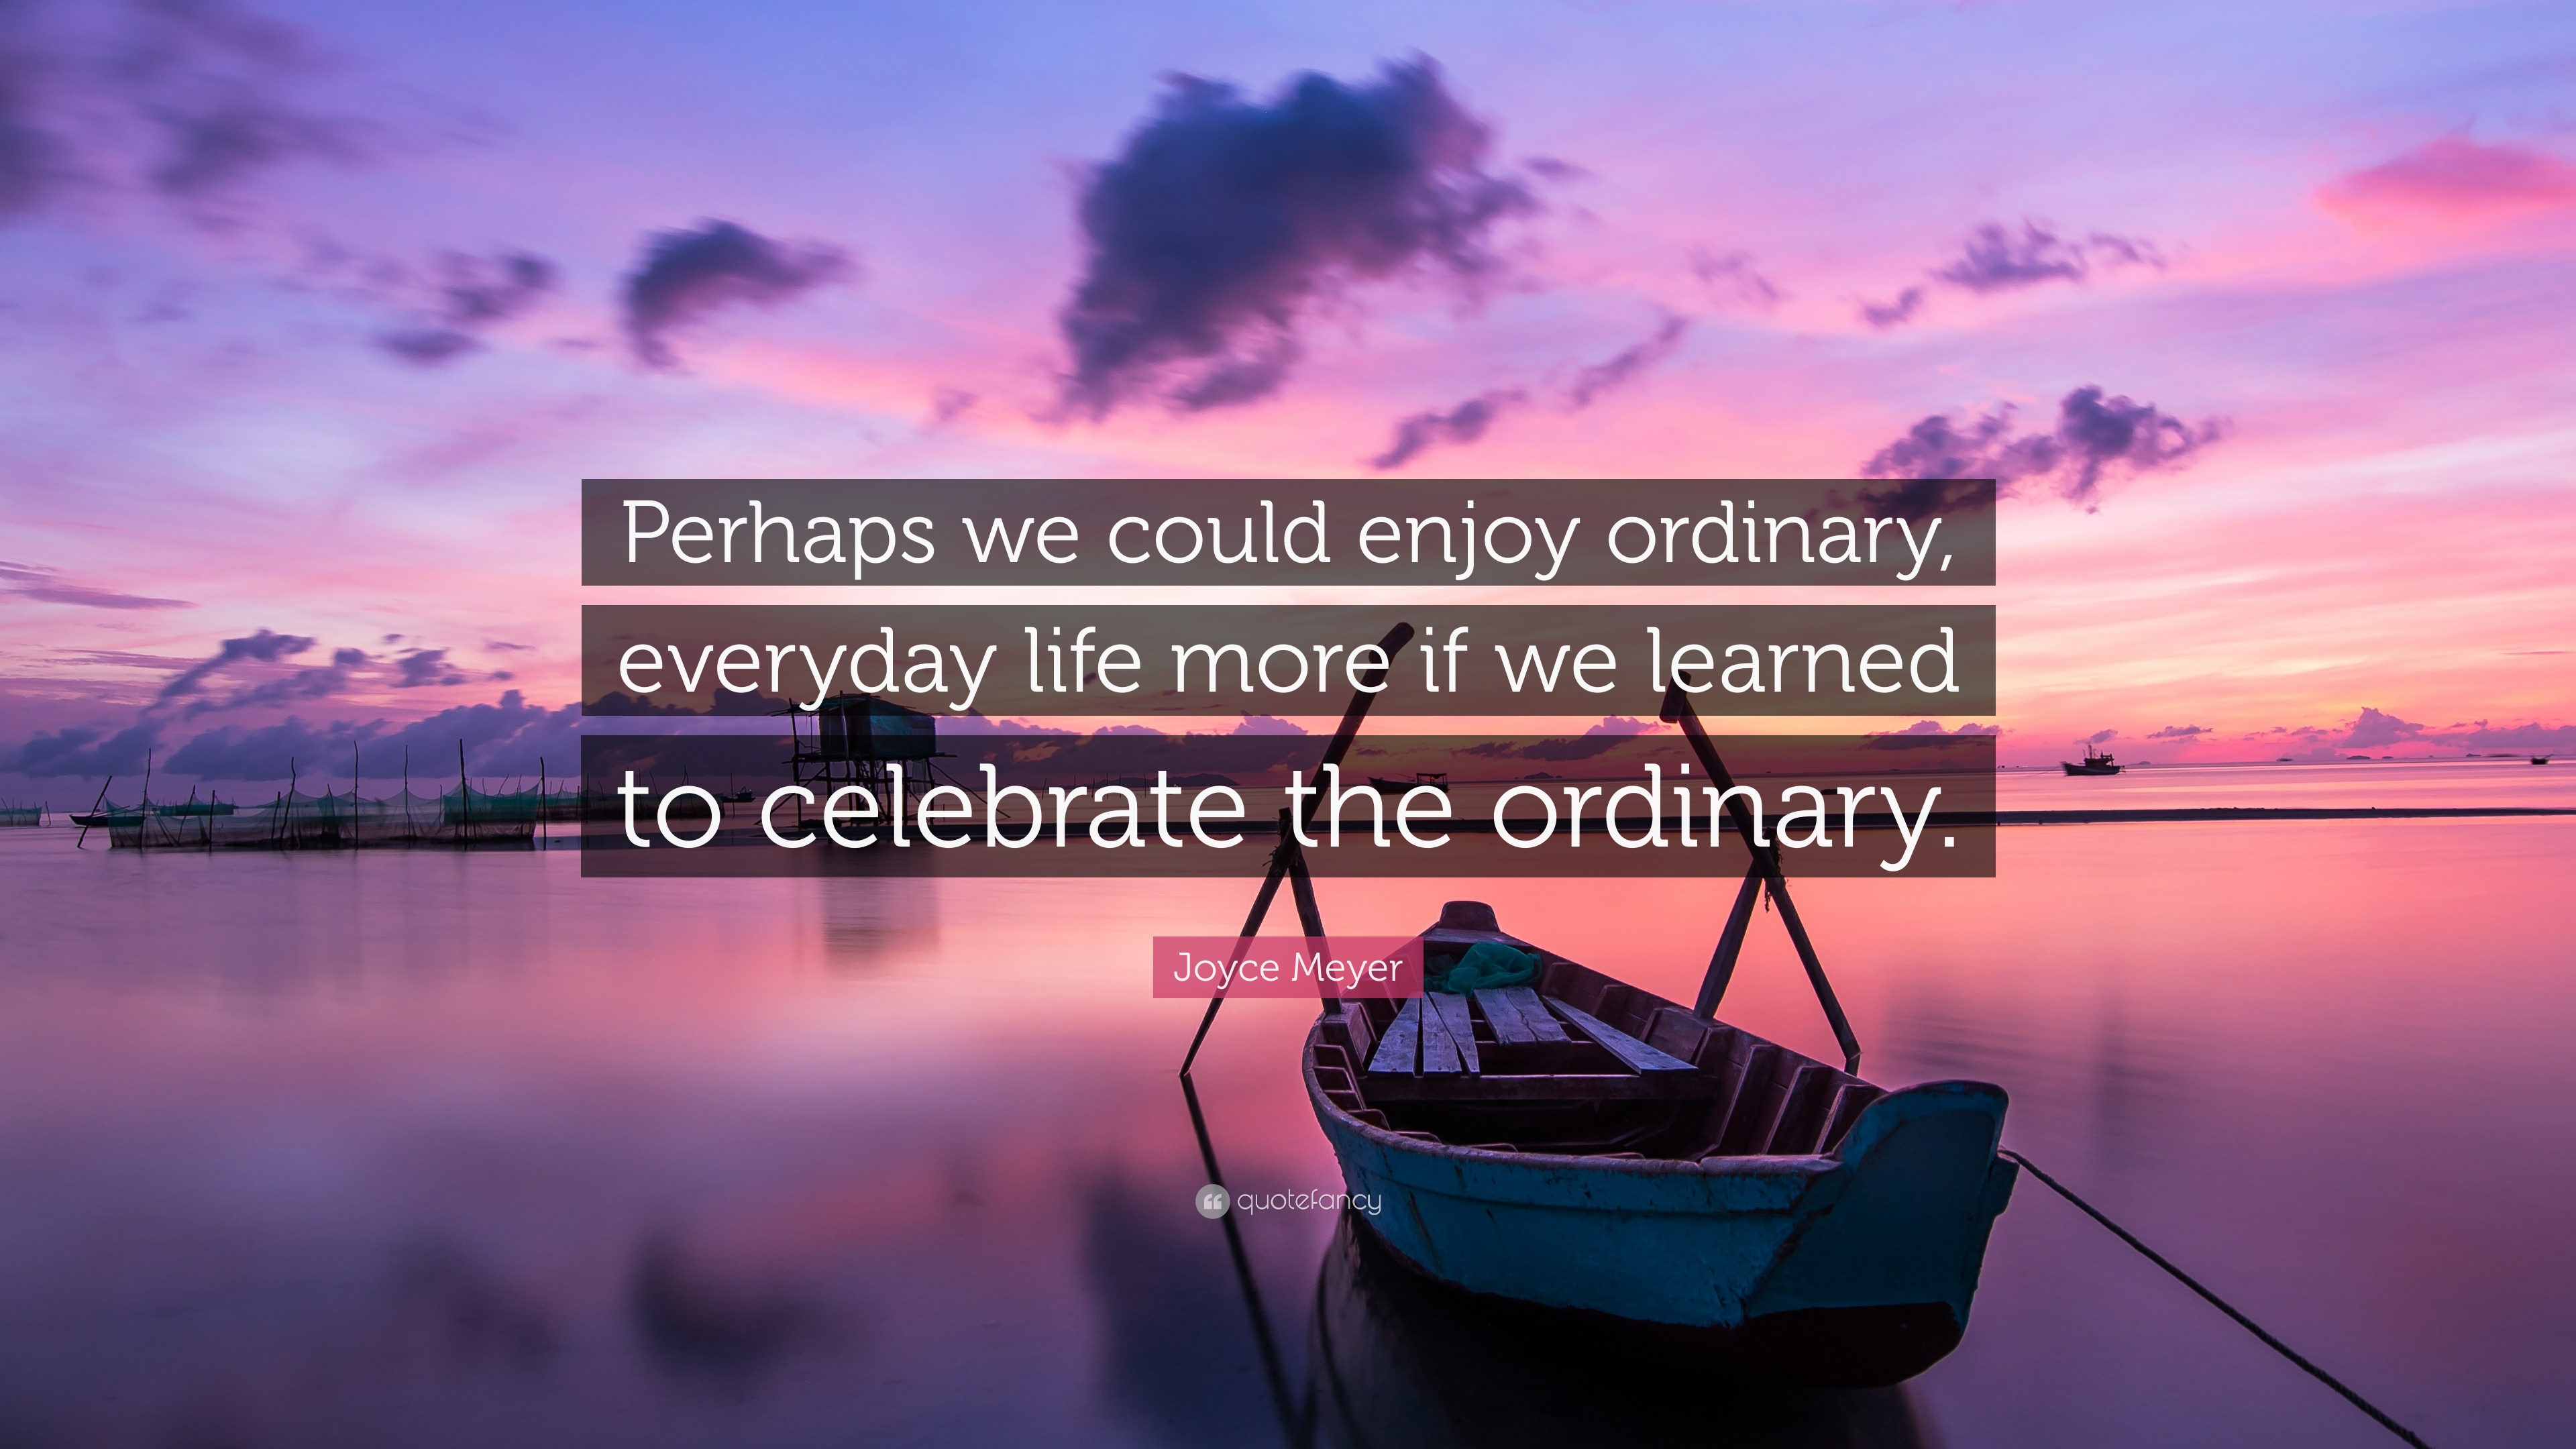 Joyce Meyer Quote: U201cPerhaps We Could Enjoy Ordinary, Everyday Life More If  We